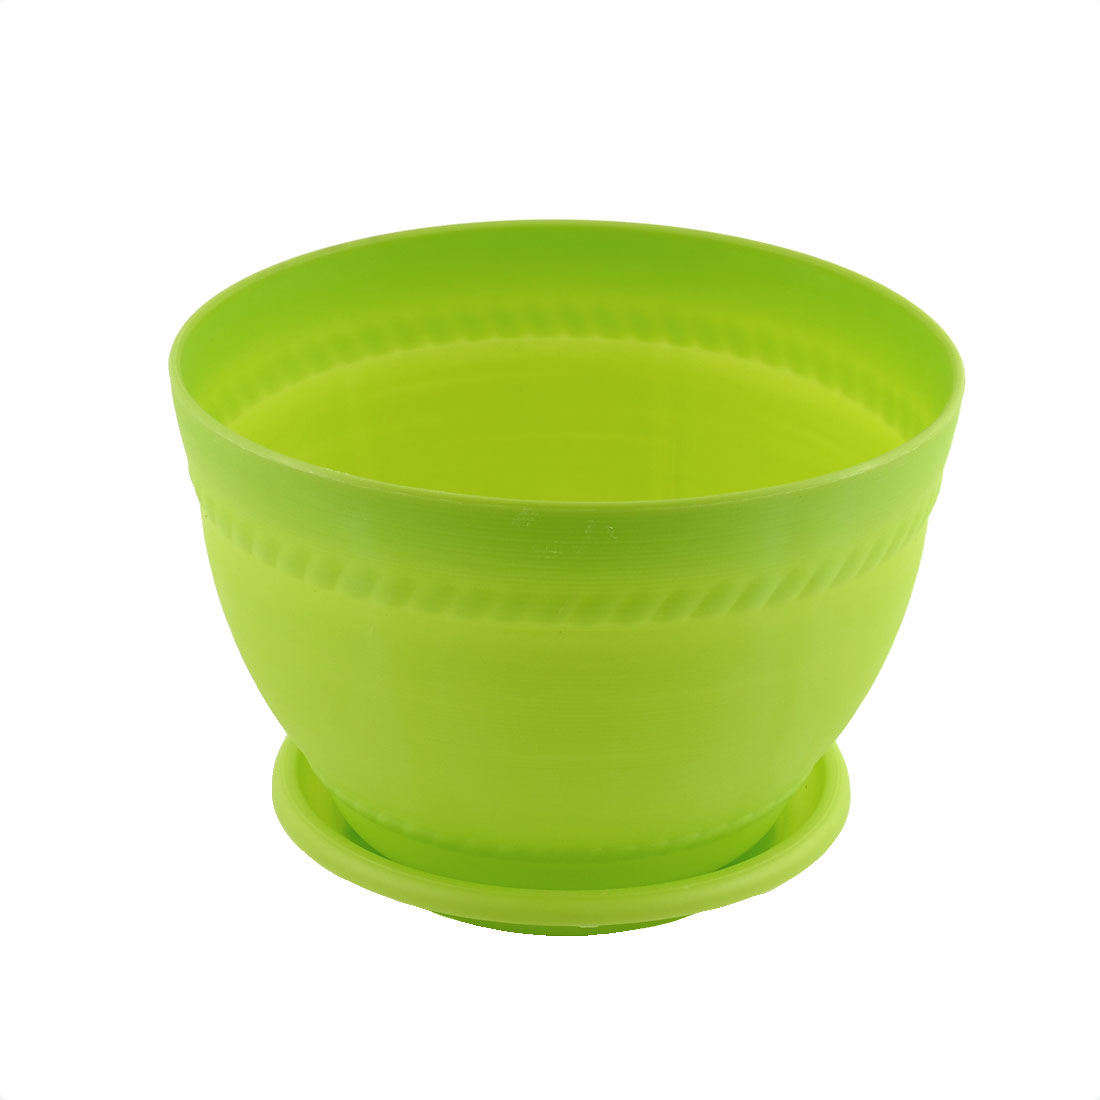 Home Hotel Desk Plastic Pottery Clay Style Plant Flower Pot Light Green w Pallet